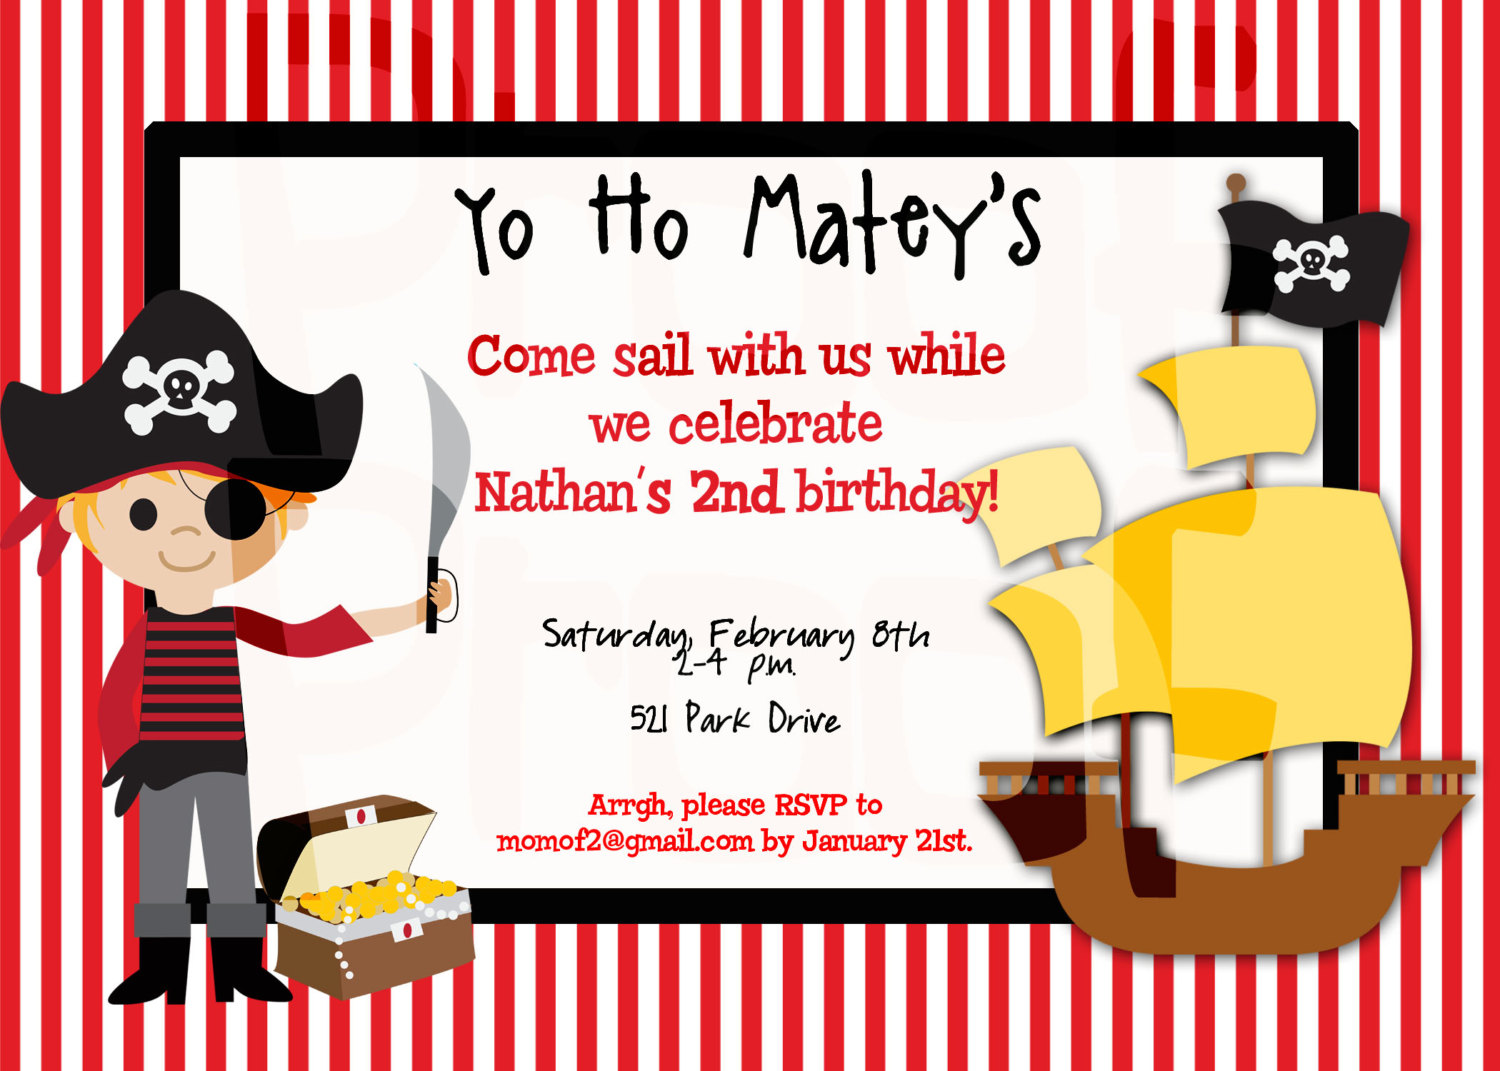 Printable pirate party decorations amp supplies free templates -  Pirate Party Invitations